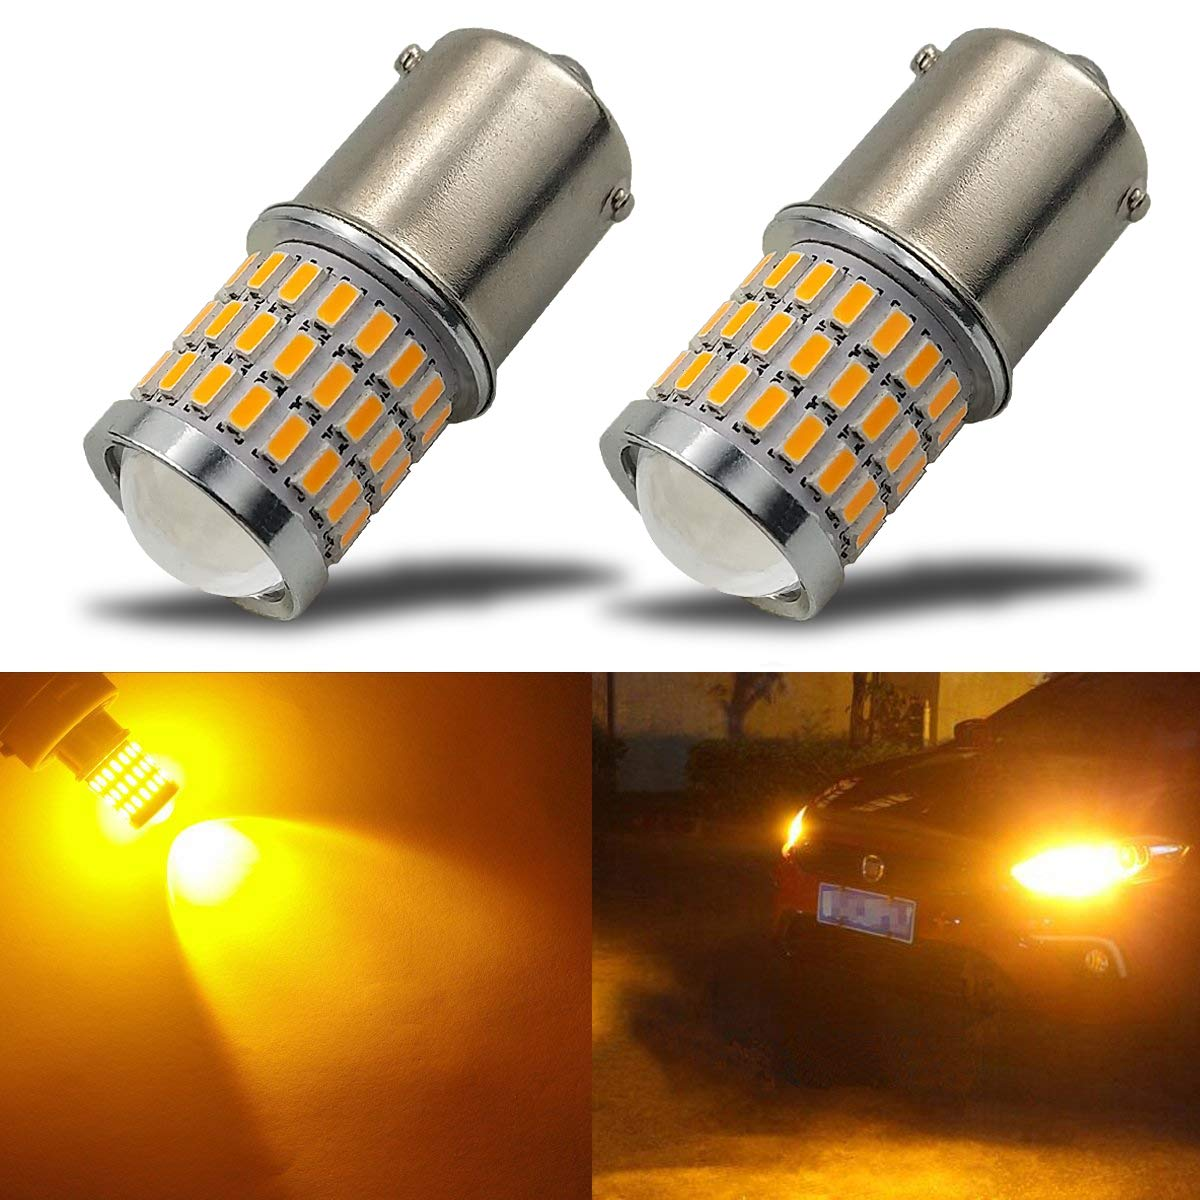 iBrightstar Newest 9-30V Super Bright Low Power 7507 PY21W BAU15S 2641A LED Bulbs with Projector replacement for Turn Signal Lights, Amber Yellow 7507-3014/3030-54/3Y